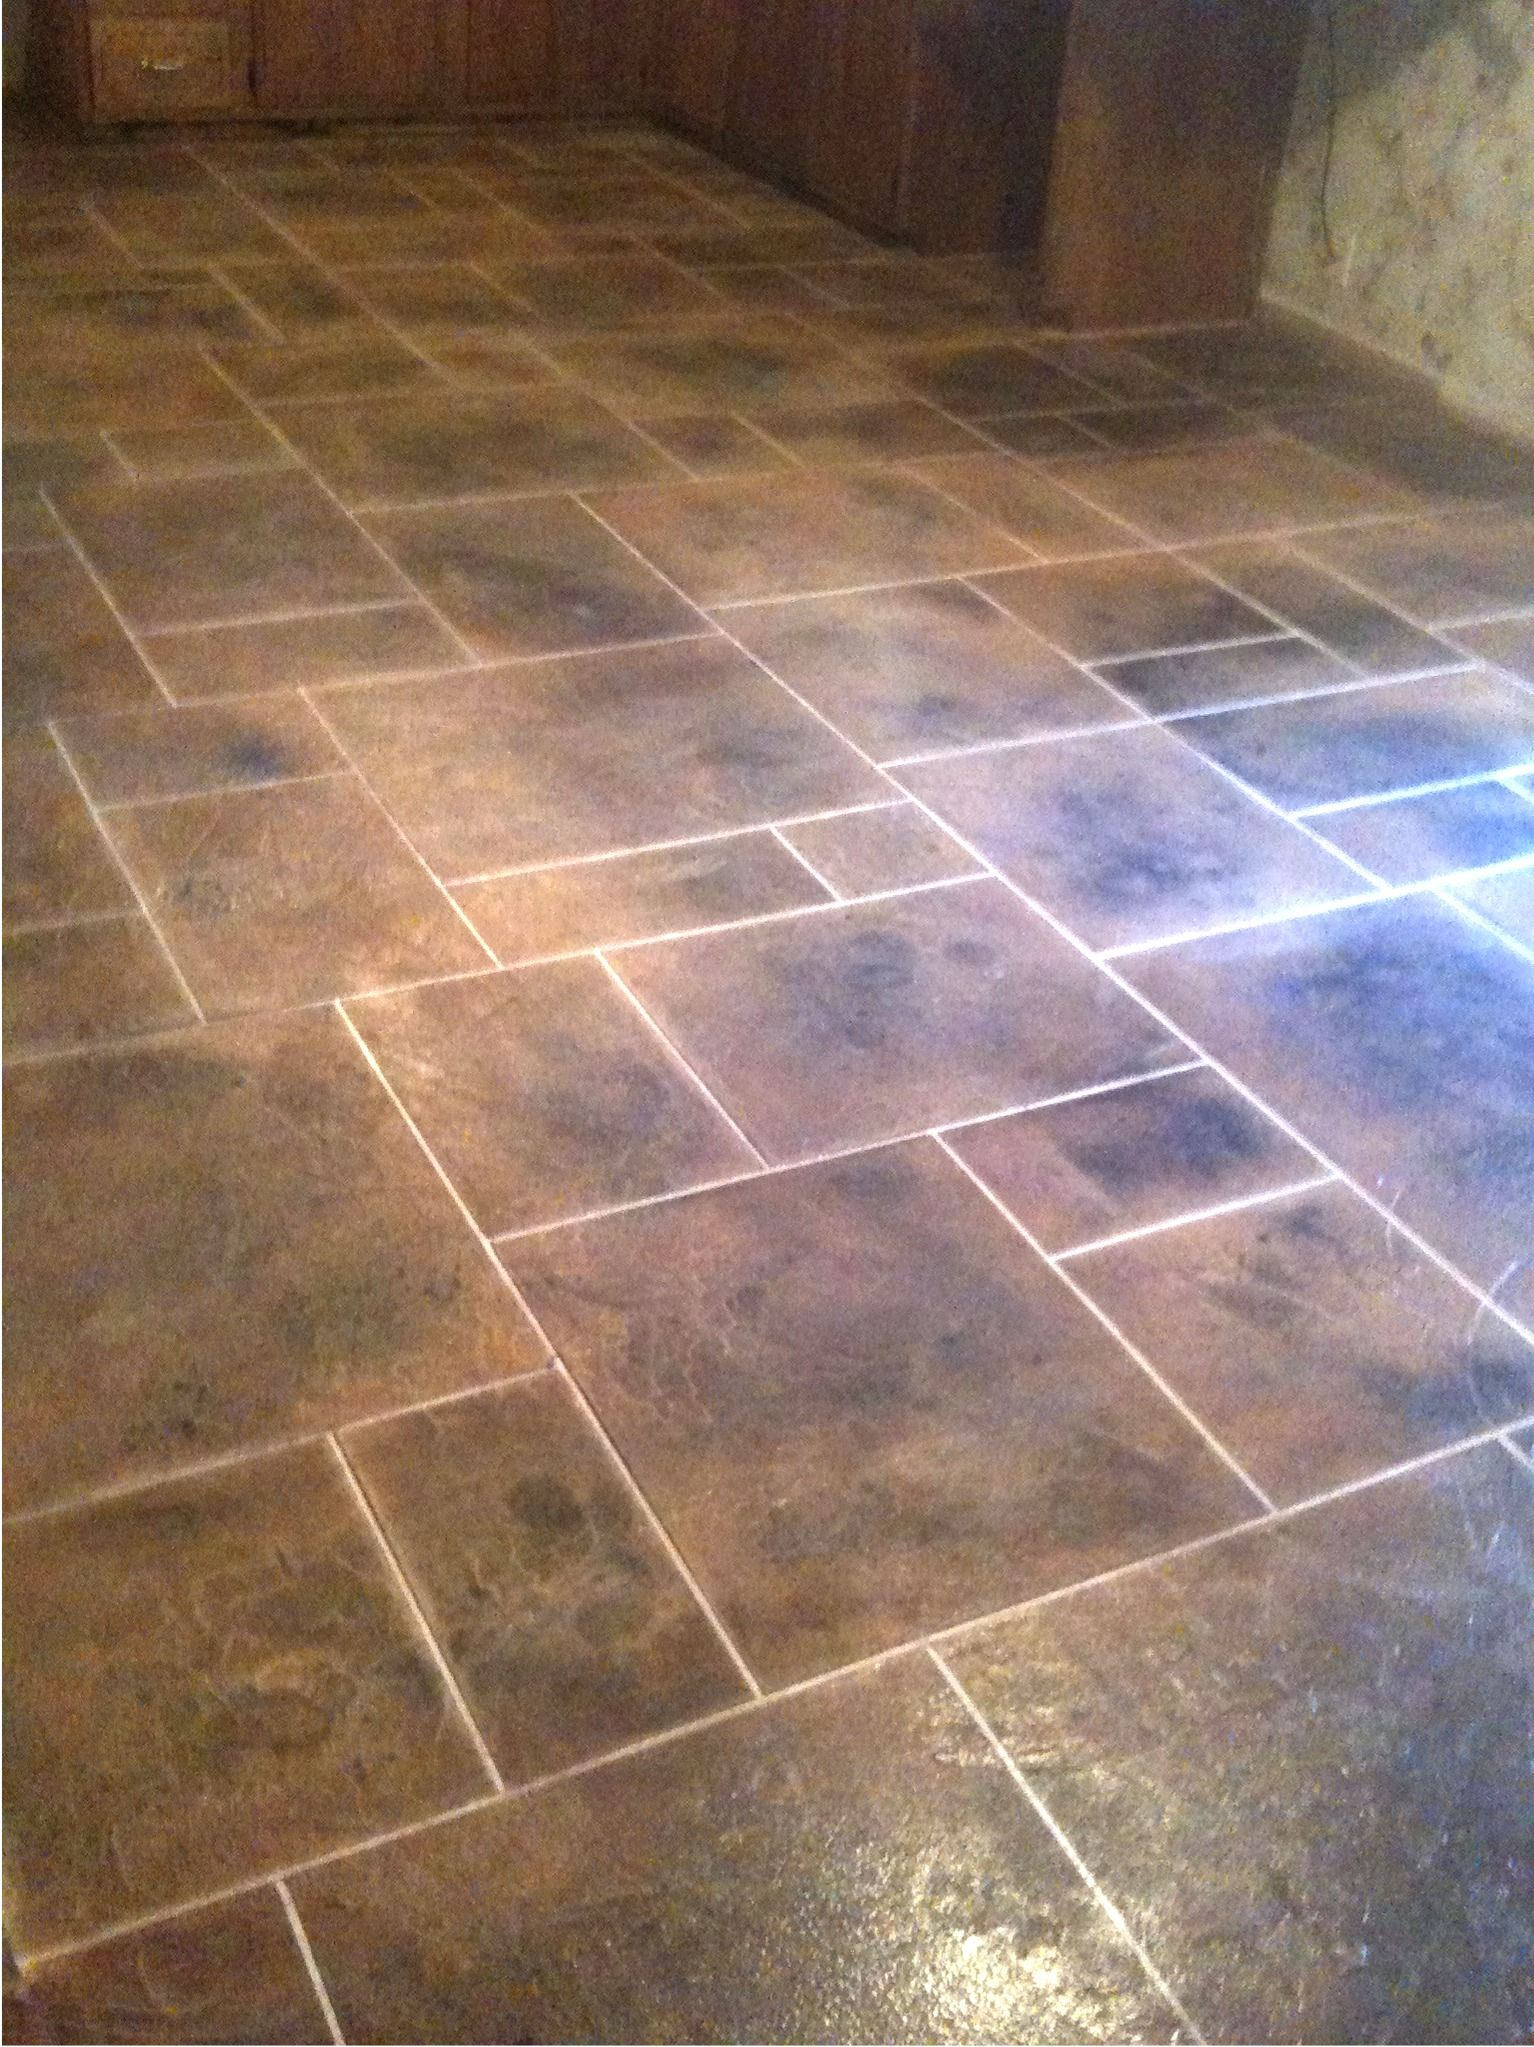 Kitchen floor tile patterns concrete overlay random pattern furniture classic kitchen tile flooring idea with multiple tile pattern 23 remarkable tile designs and patterns idea for kitchen floors design ideas dailygadgetfo Images